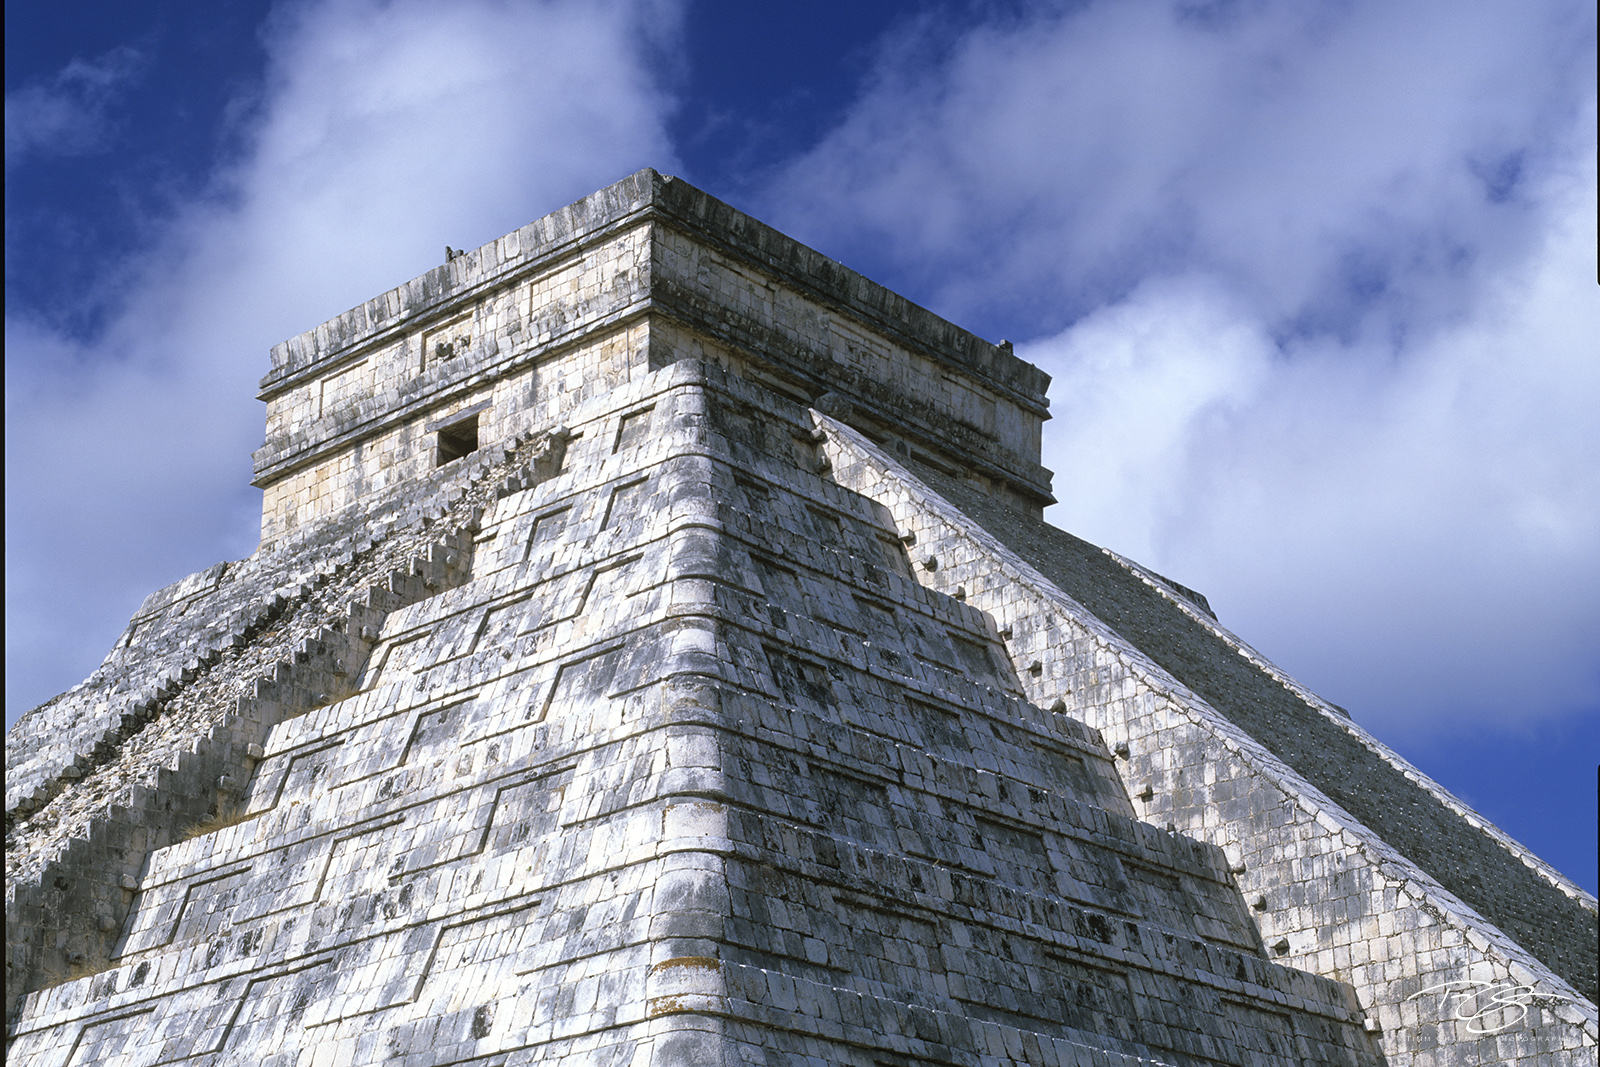 Chichen Itza, mayan ruins, maya culture, temple of kukulkan, temple of kulkulcan, quetzalcoatl, el castillo, the castle, serpent, snake, spring equinox, autumn equinox, fall equinox, shadows, step pyr, photo